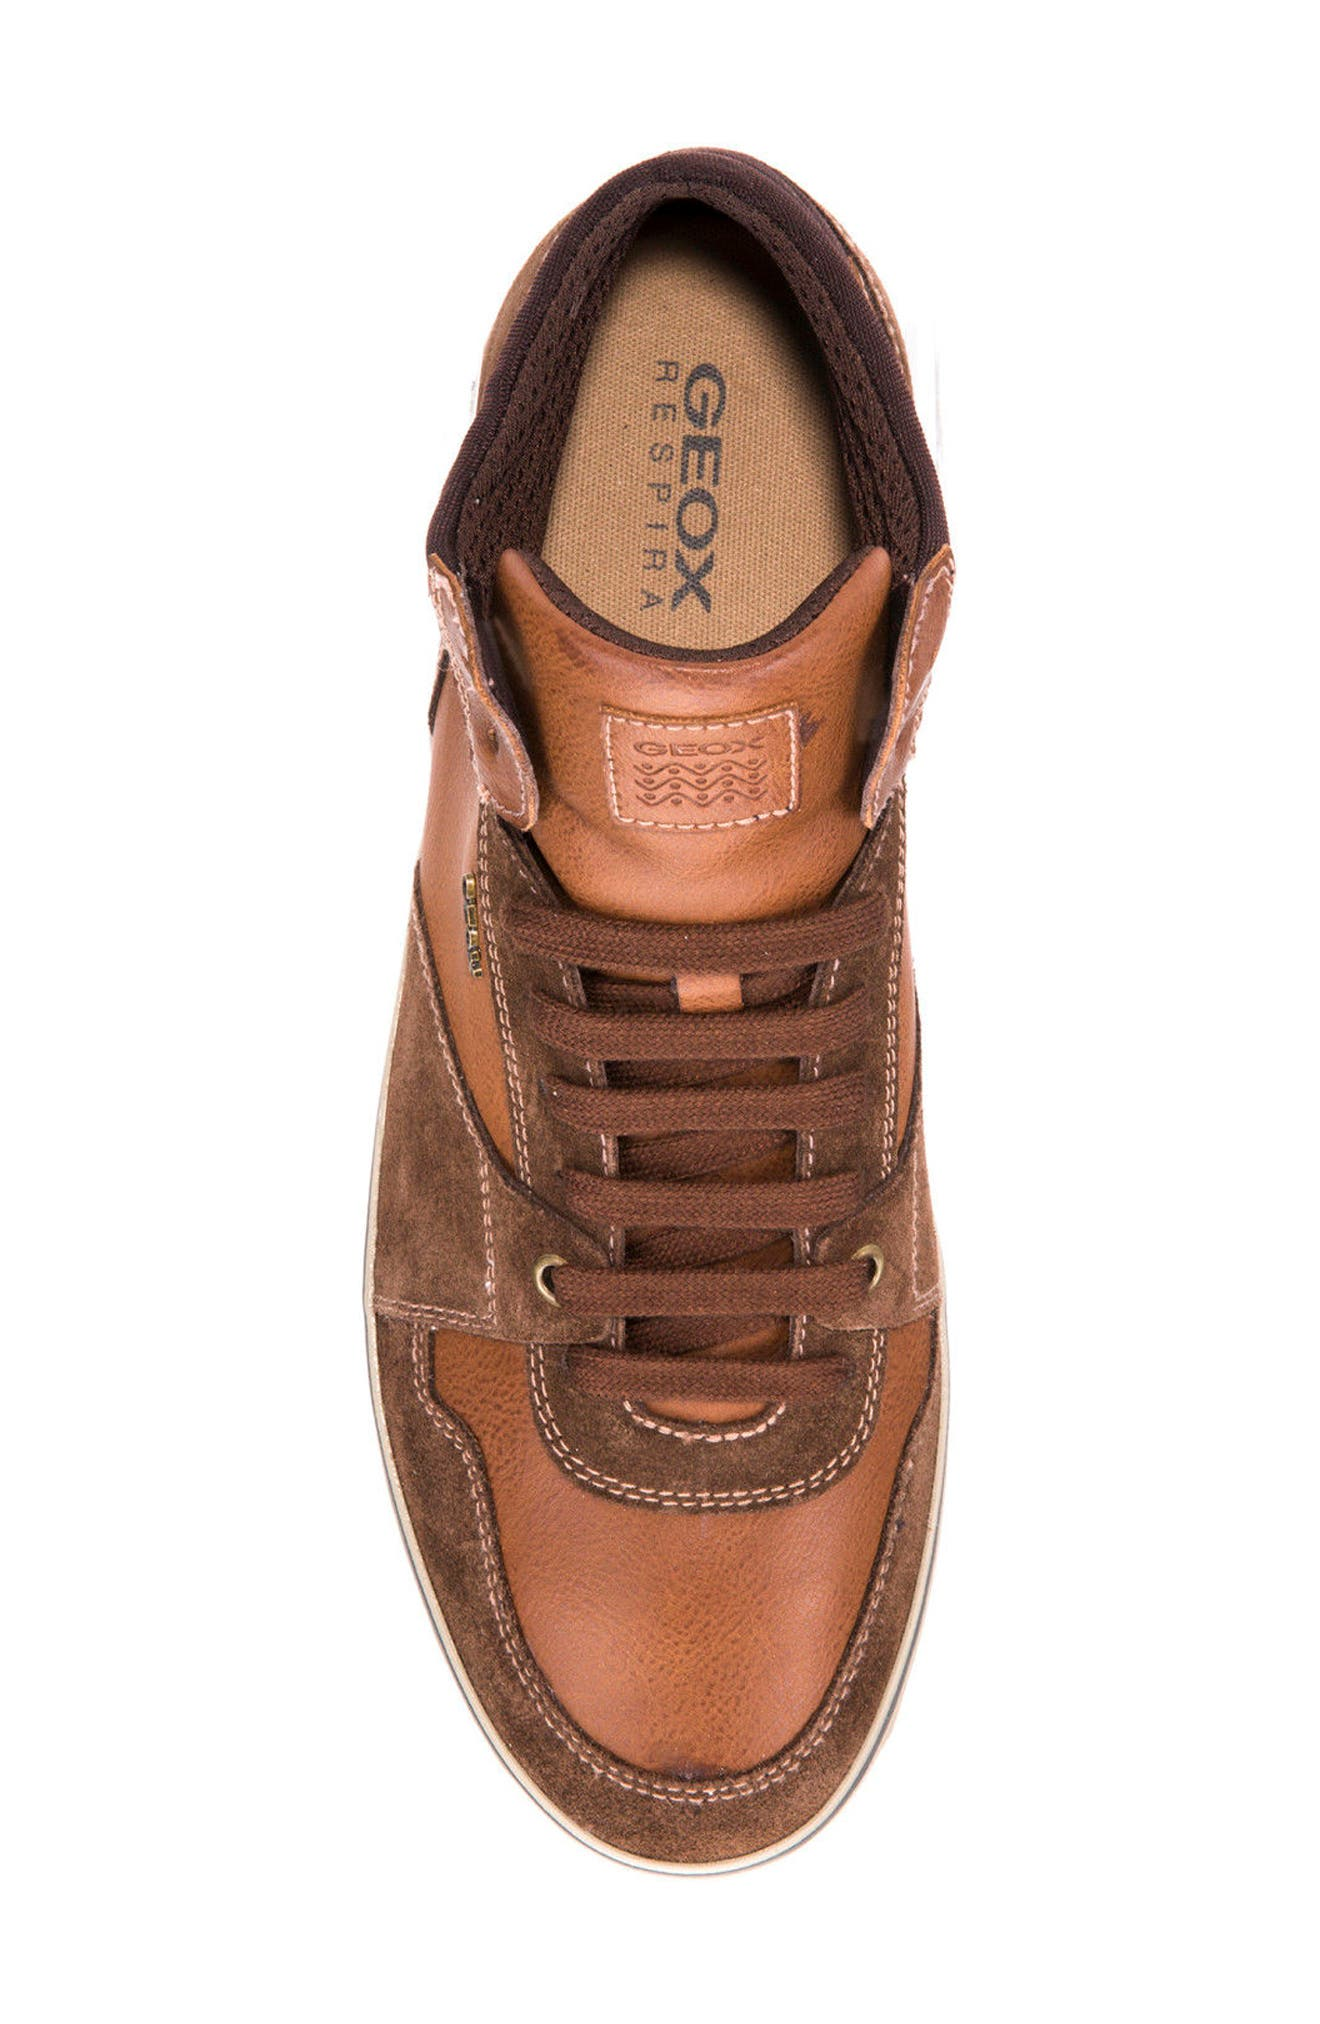 Box 30 High Top Sneaker,                             Alternate thumbnail 3, color,                             Ebony/ Brown Cotto